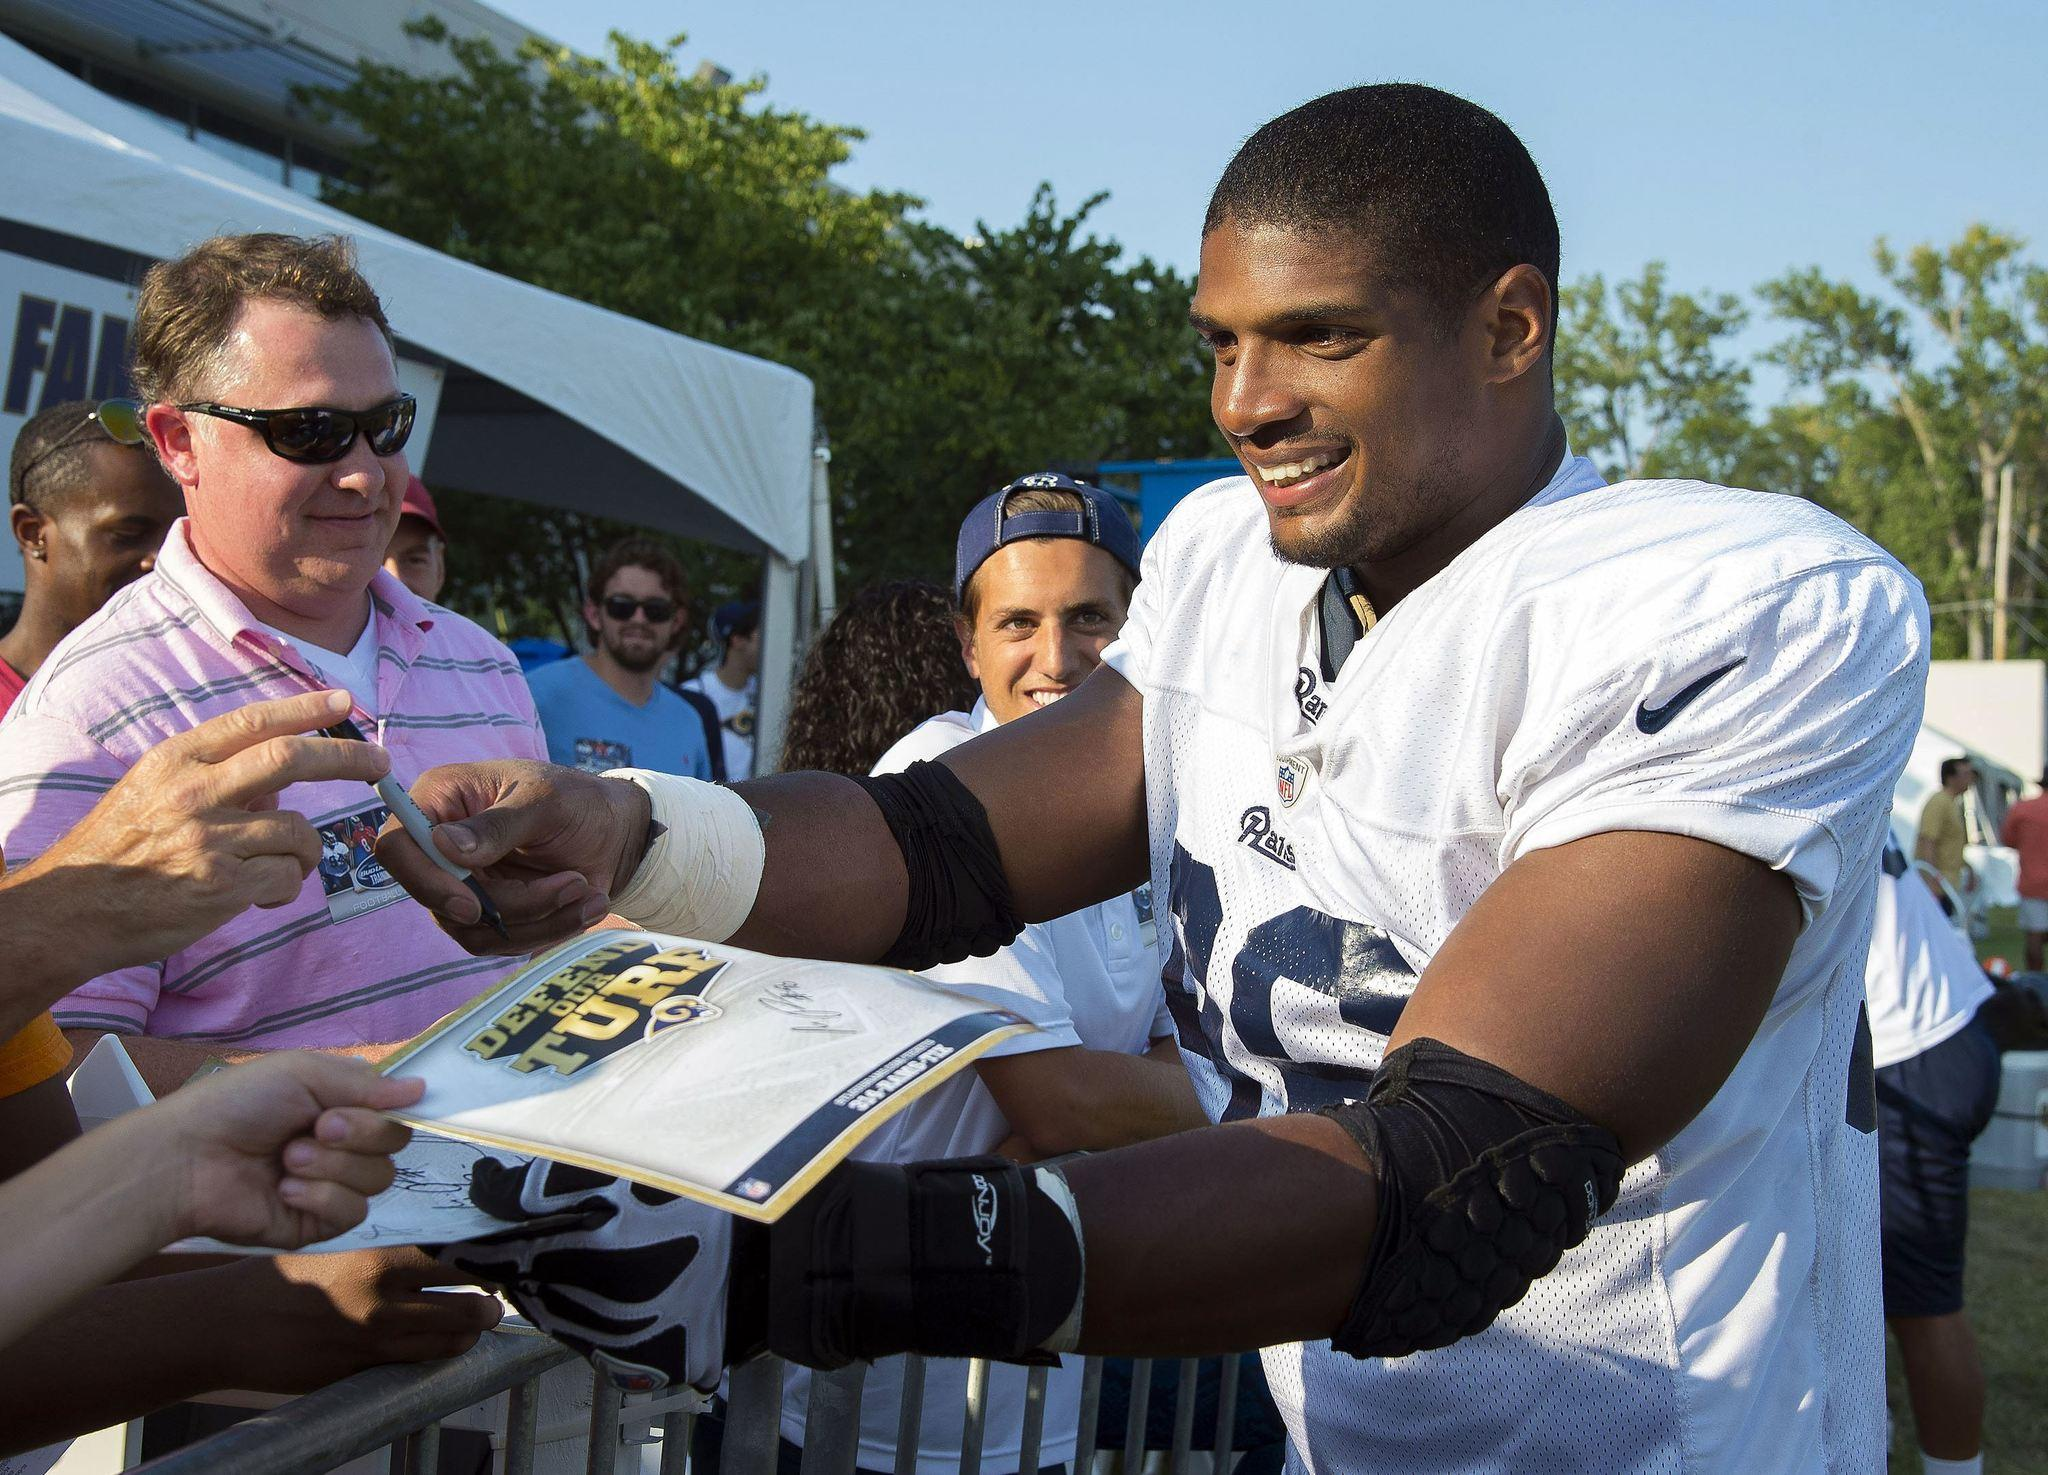 St. Louis Rams defensive lineman Michael Sam signs autographs after practice at Rams Park in this file photo taken in St Louis, Missouri, July 29, 2014. Sports television network ESPN said on Wednesday it regrets a report that detailed the showering habits of St. Louis Rams defensive end Michael Sam, the first openly gay player to be drafted in the NFL.